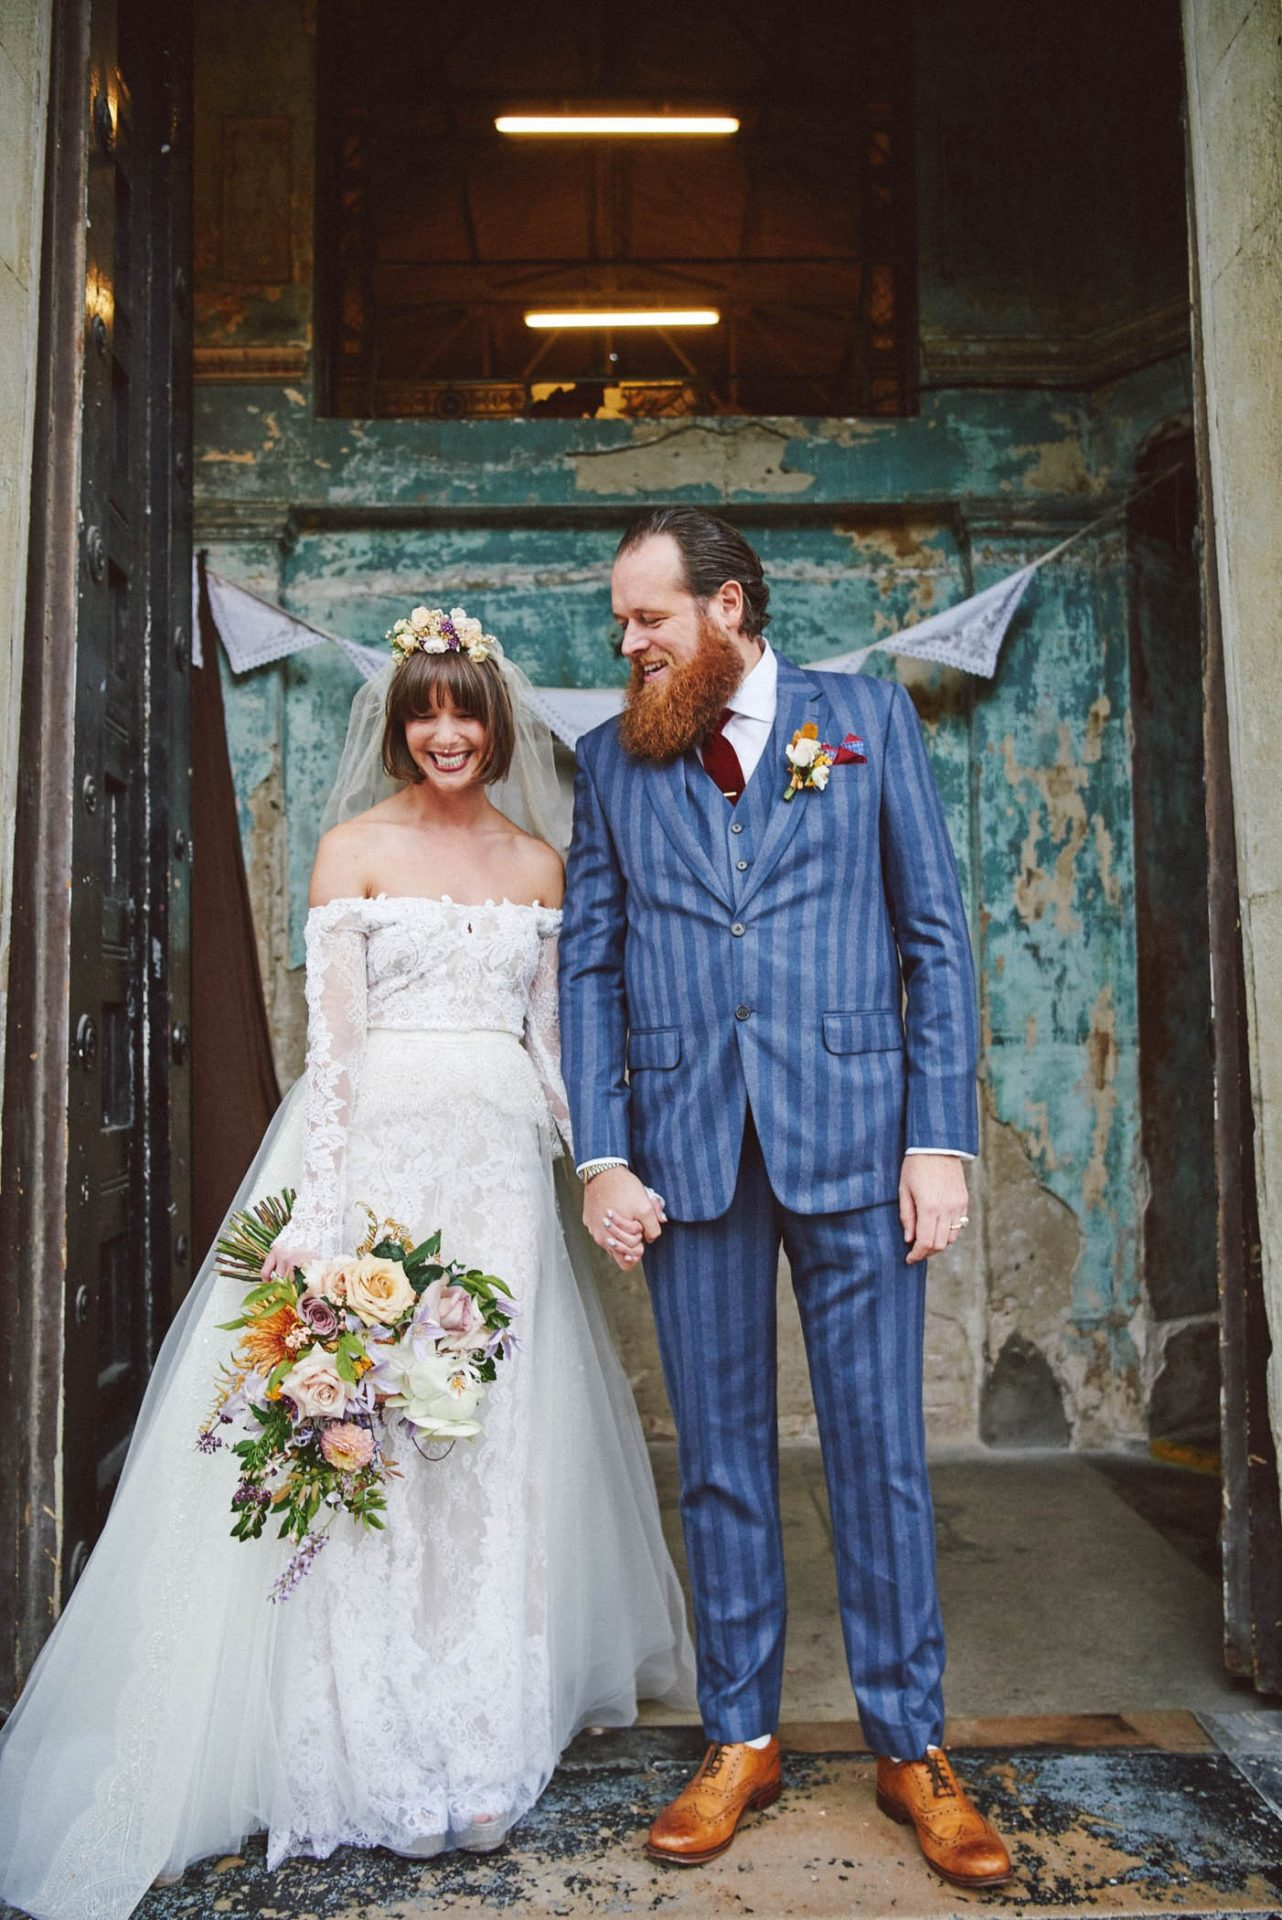 bride and groom laughing together in front of rustic entrance at the Asylum venue in London